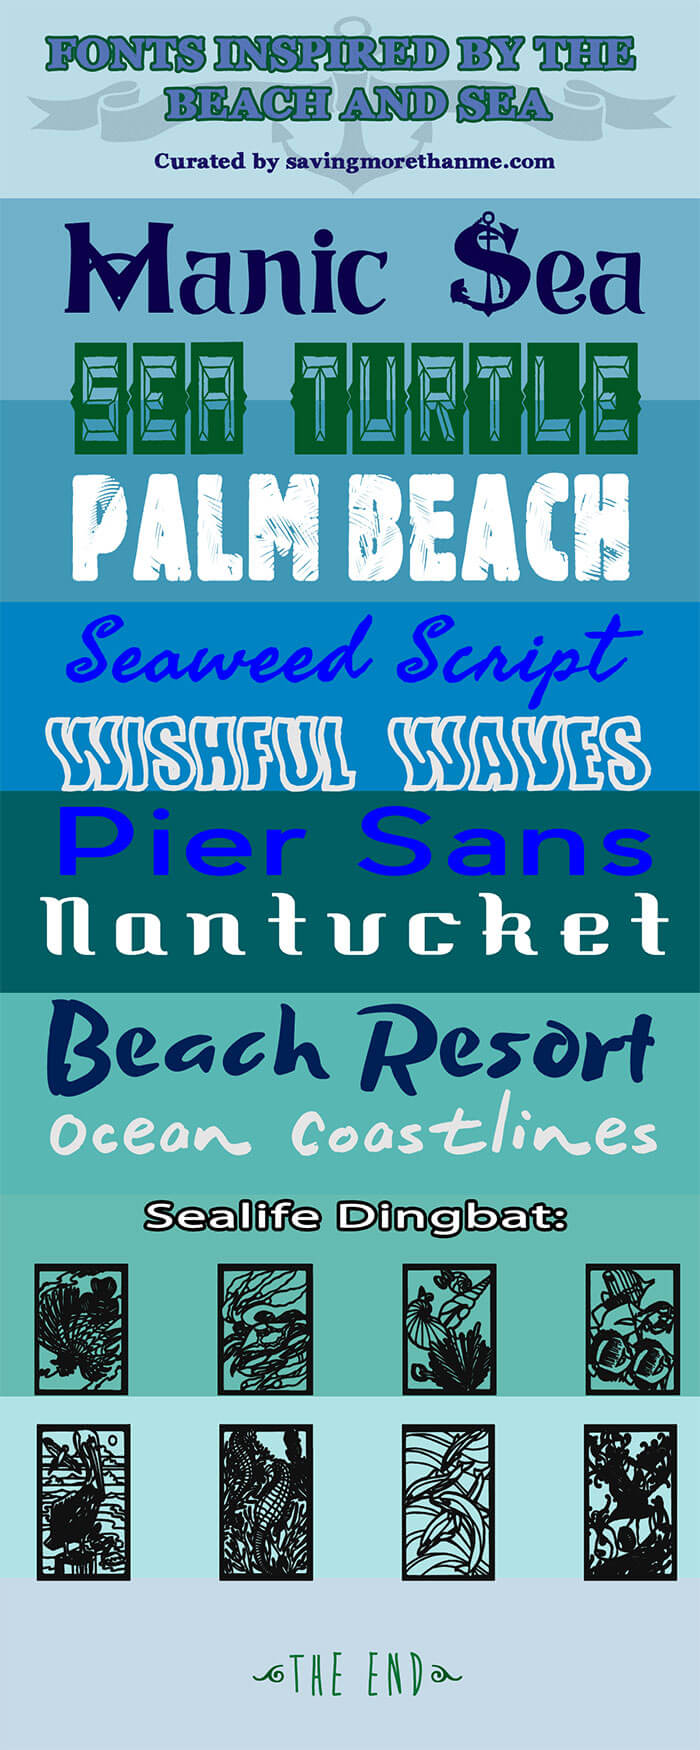 Free Fonts Inspired By The Beach and Sea winterandsparrow.com